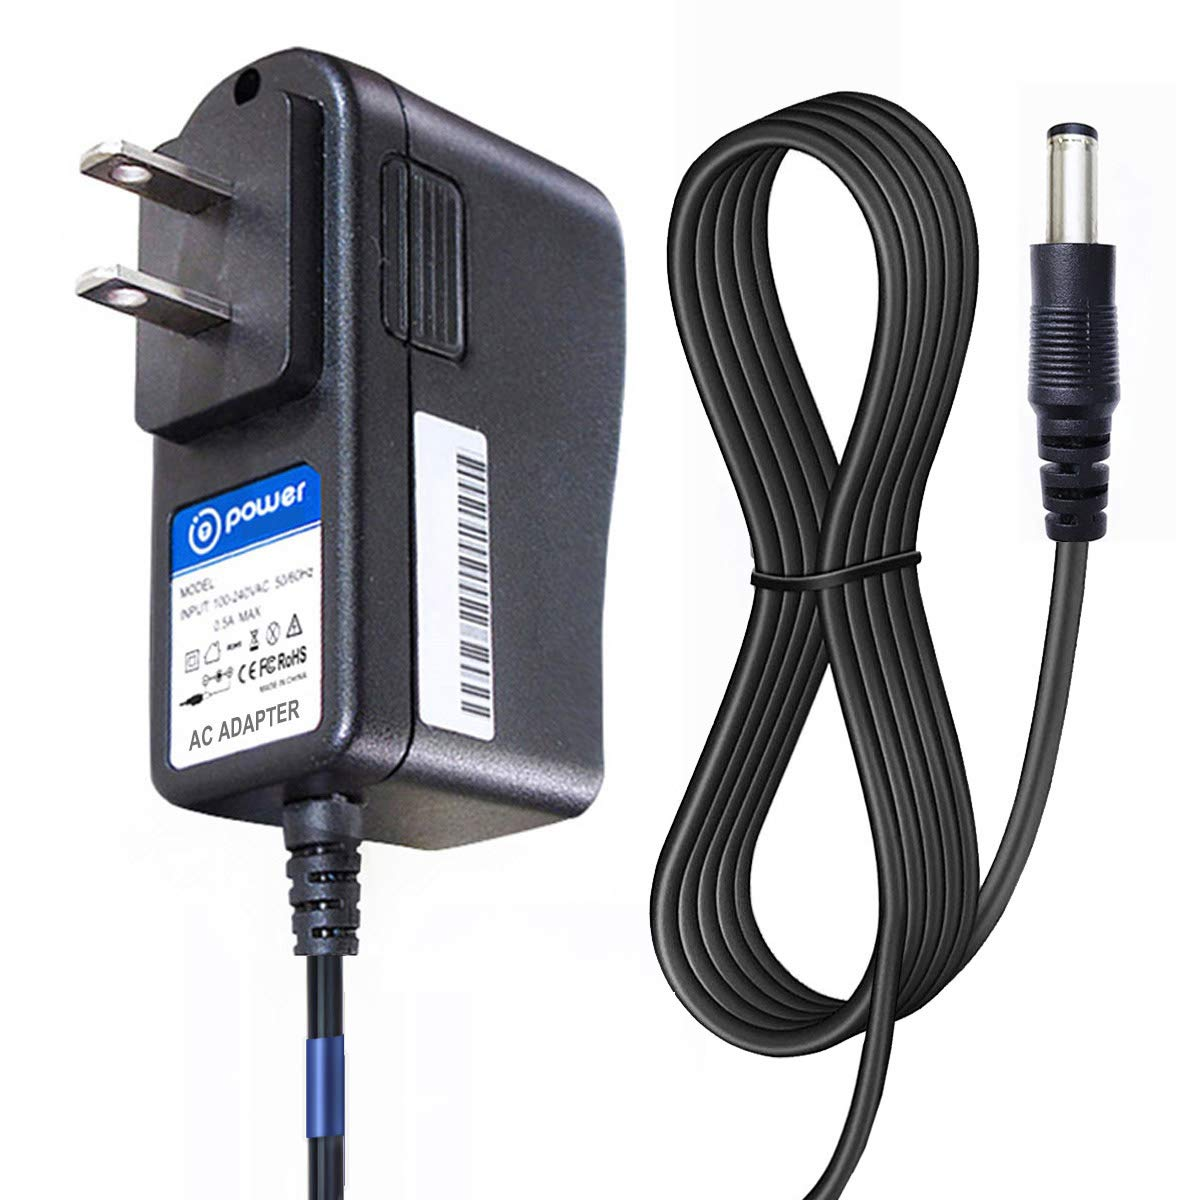 T POWER Ac Adapter Charger Compatible with 12V LitterMaid LM680C LM980, P-70016 Automatic Self-Cleaning Classic Litter Box Power Supply